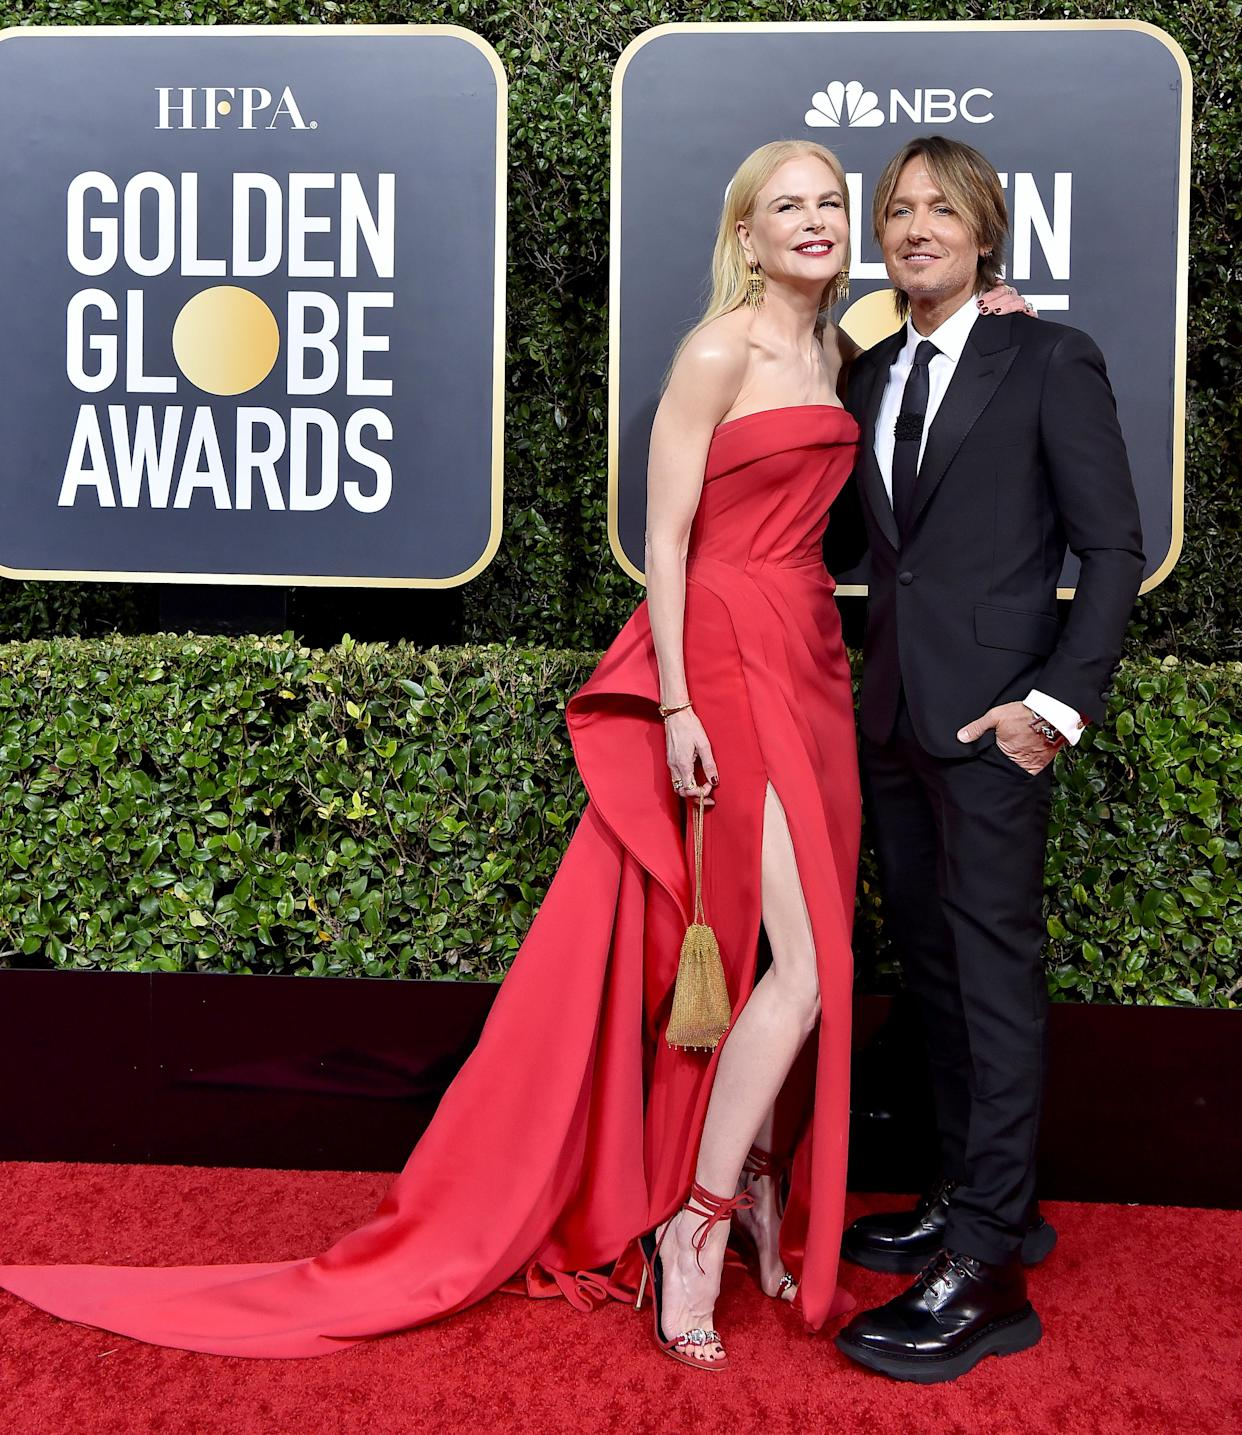 BEVERLY HILLS, CALIFORNIA - JANUARY 05: Nicole Kidman and Keith Urban attend the 77th Annual Golden Globe Awards at The Beverly Hilton Hotel on January 05, 2020 in Beverly Hills, California. (Photo by Axelle/Bauer-Griffin/FilmMagic)